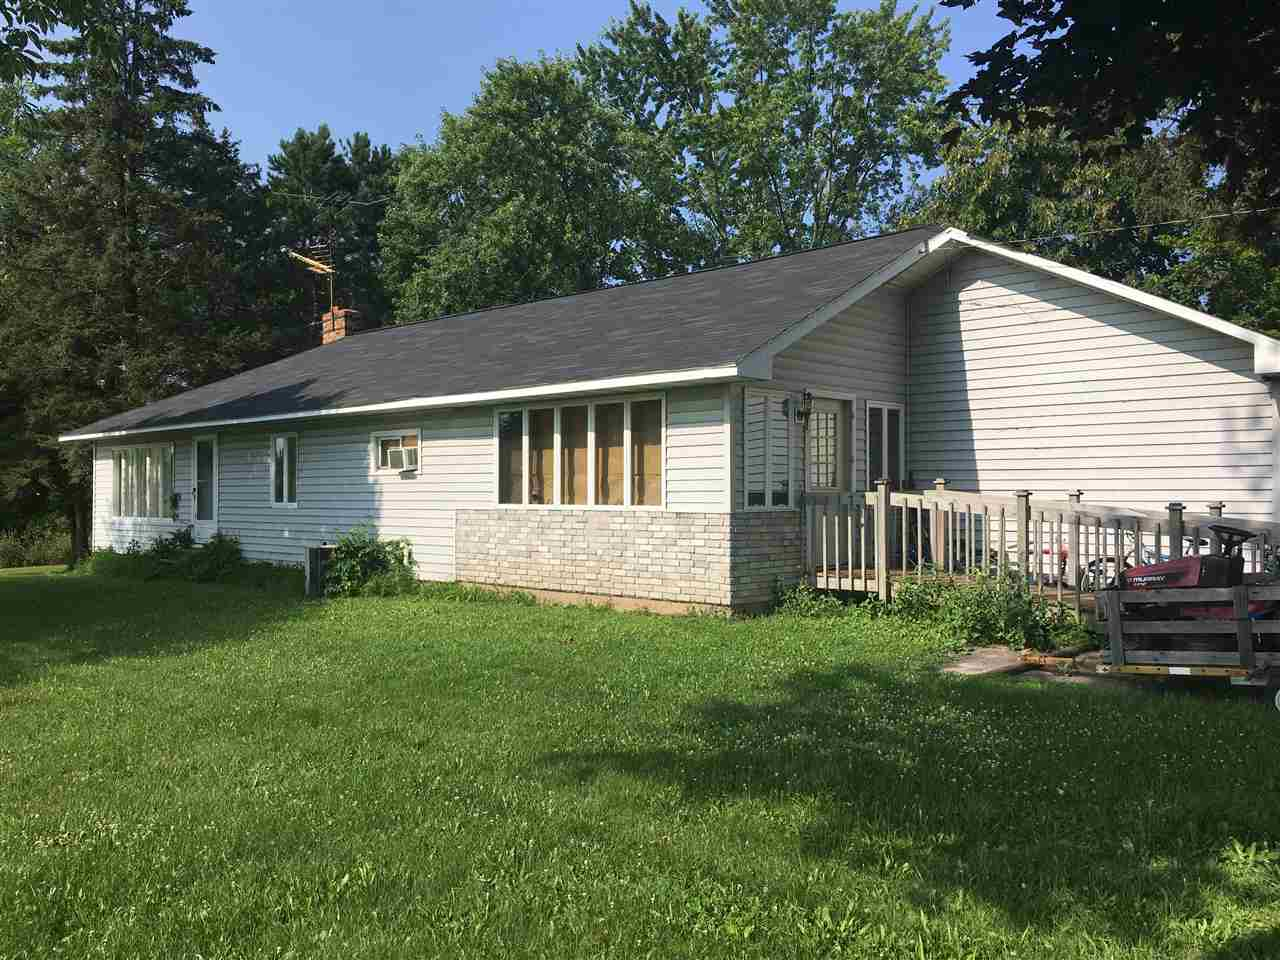 1704 N Superior Ave, Tomah, WI 54660